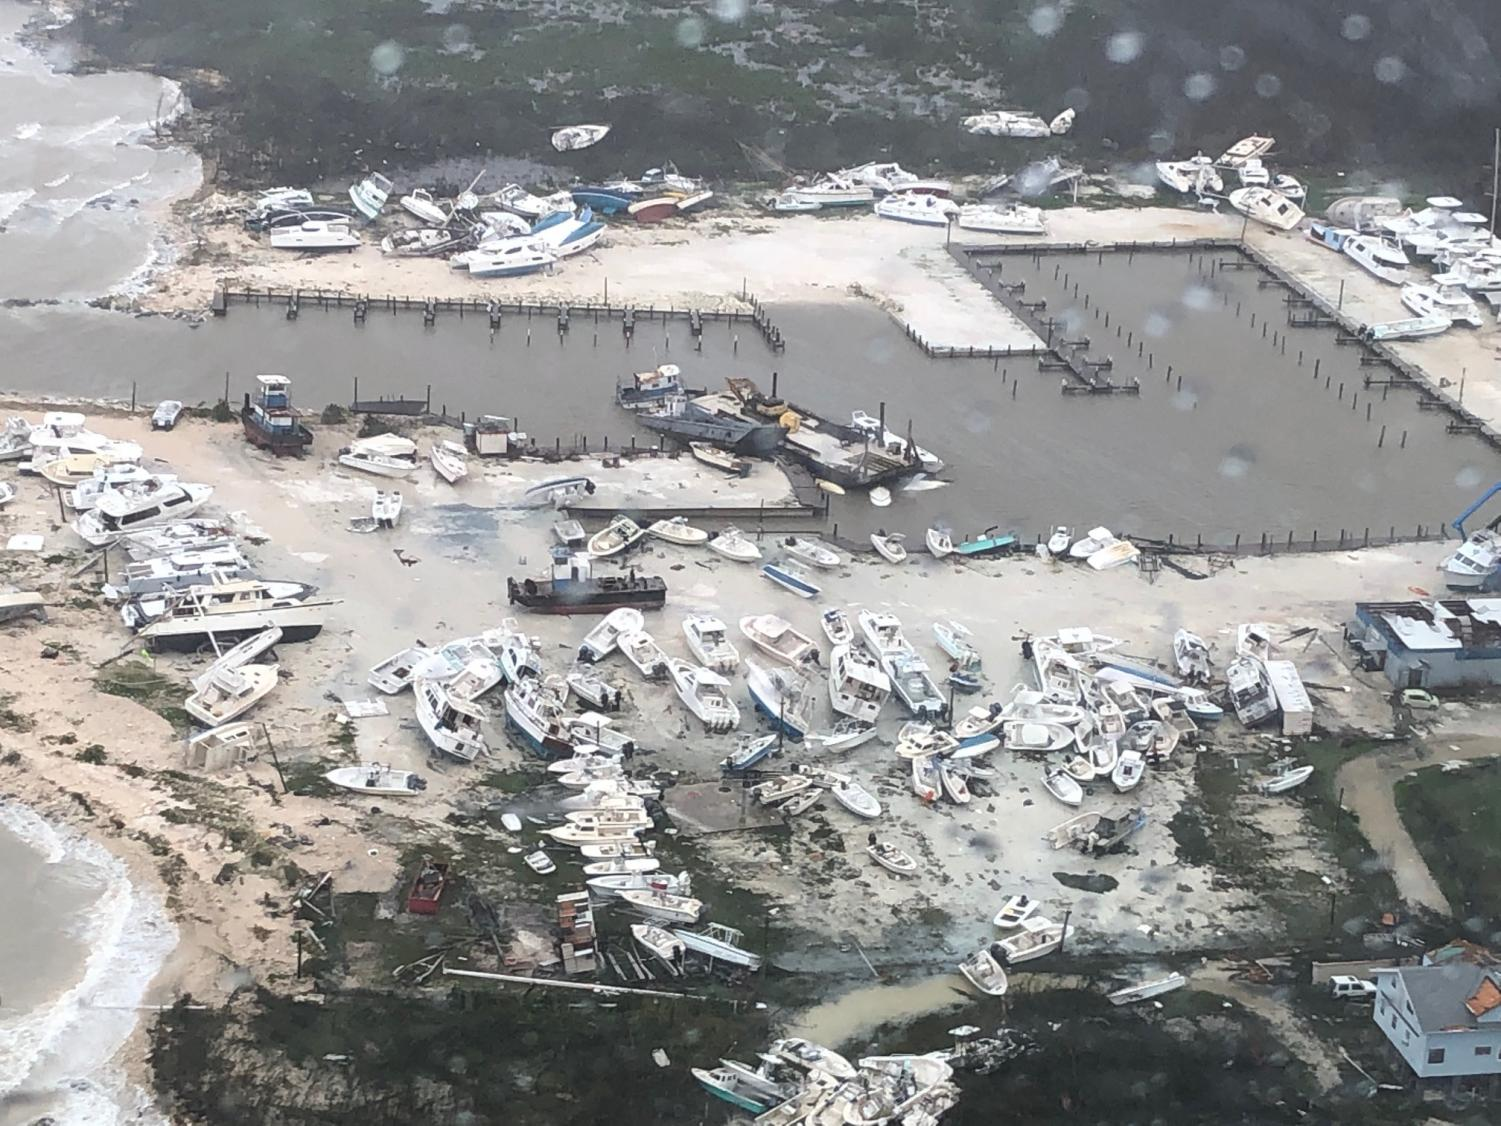 This image shows some of the destruction at the Bahamas following Hurricane Dorian.